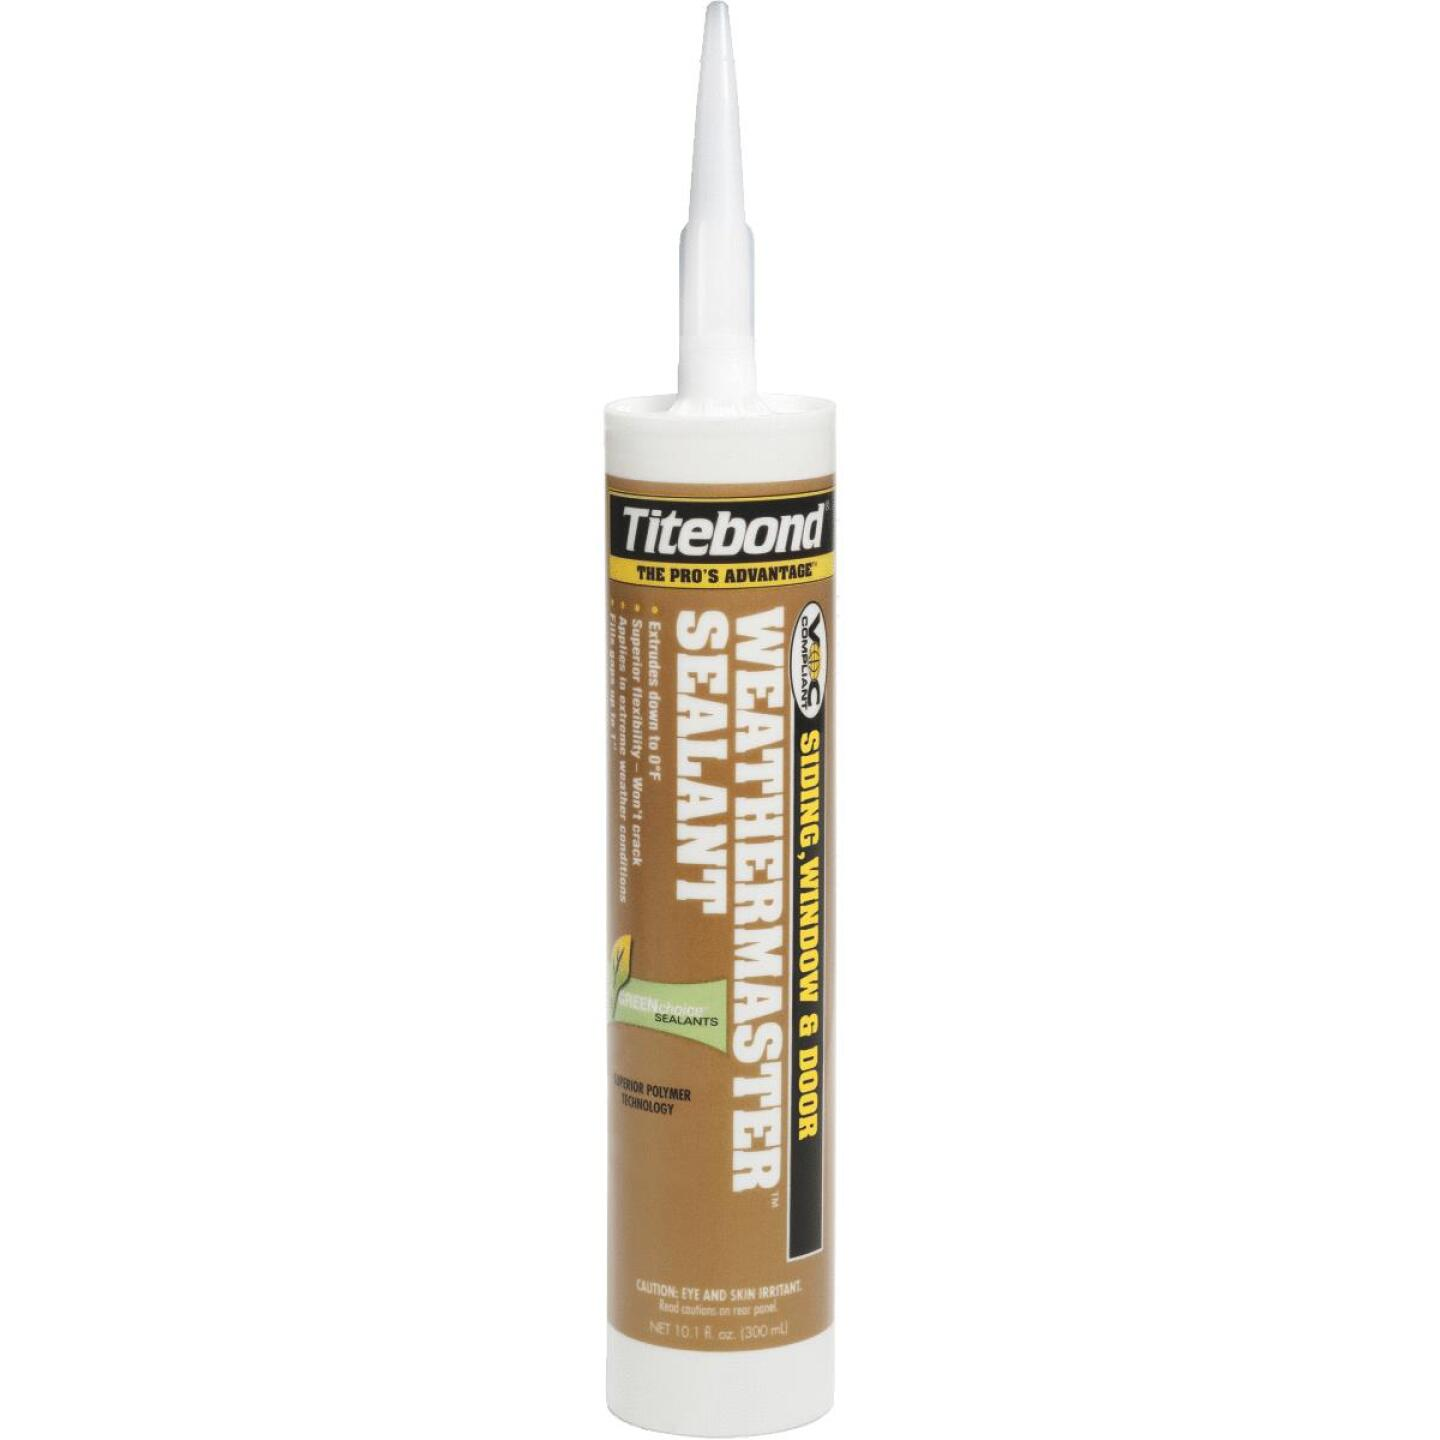 Titebond WeatherMaster 10 Oz. Polymer Sealant, 43991 Crystal Clear Image 1